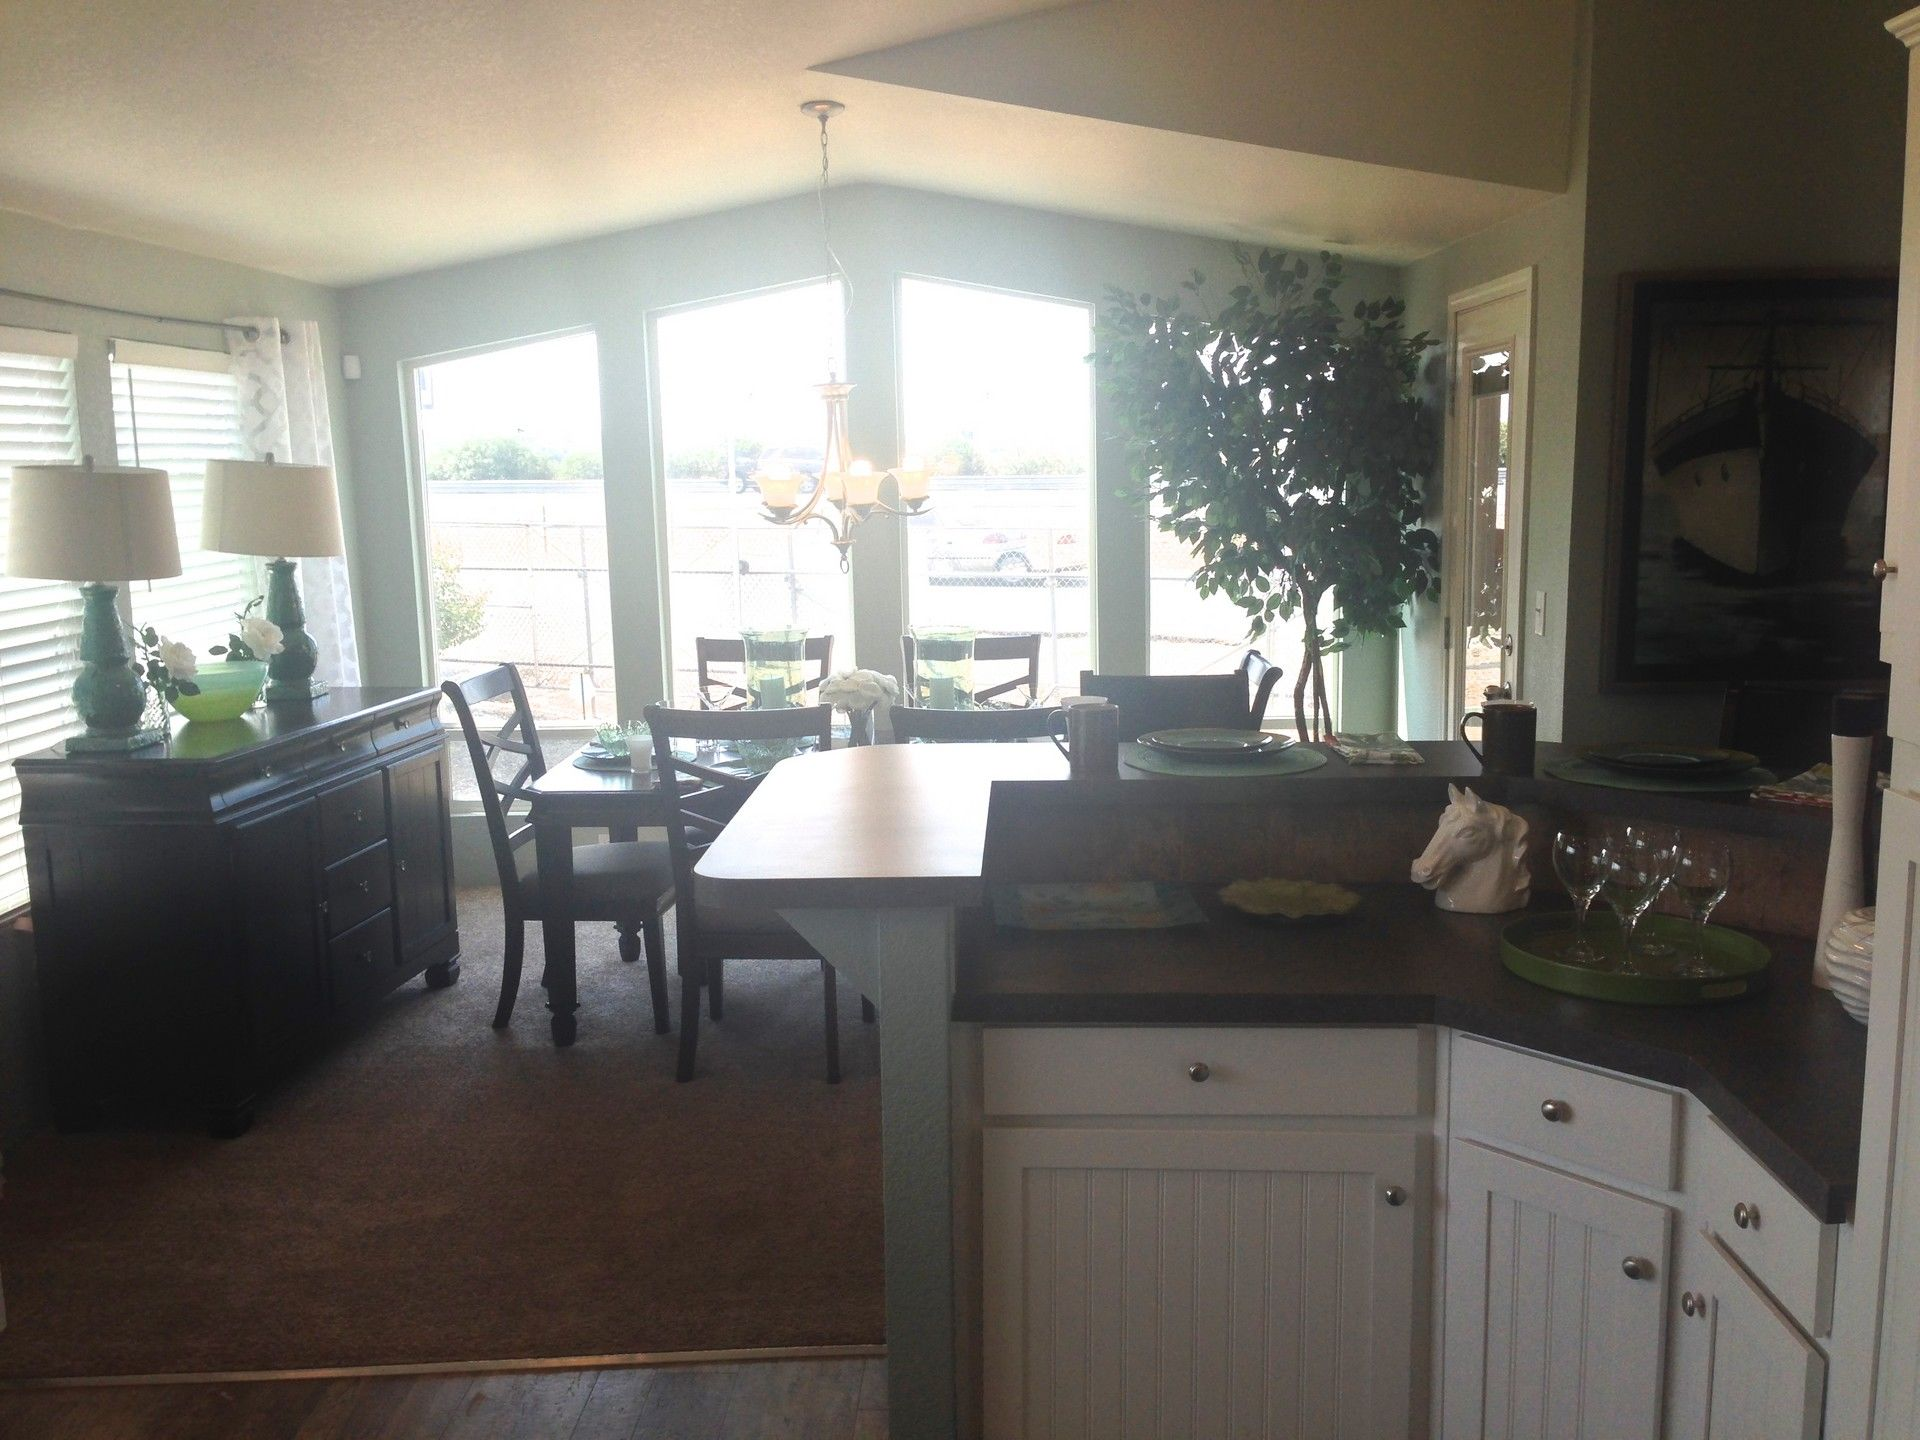 Oklahoma City Sales Tax >> Golden West (Perris, CA) 3 Bedroom Manufactured Home Sunset Bay for $84900 | Model CK564F from ...